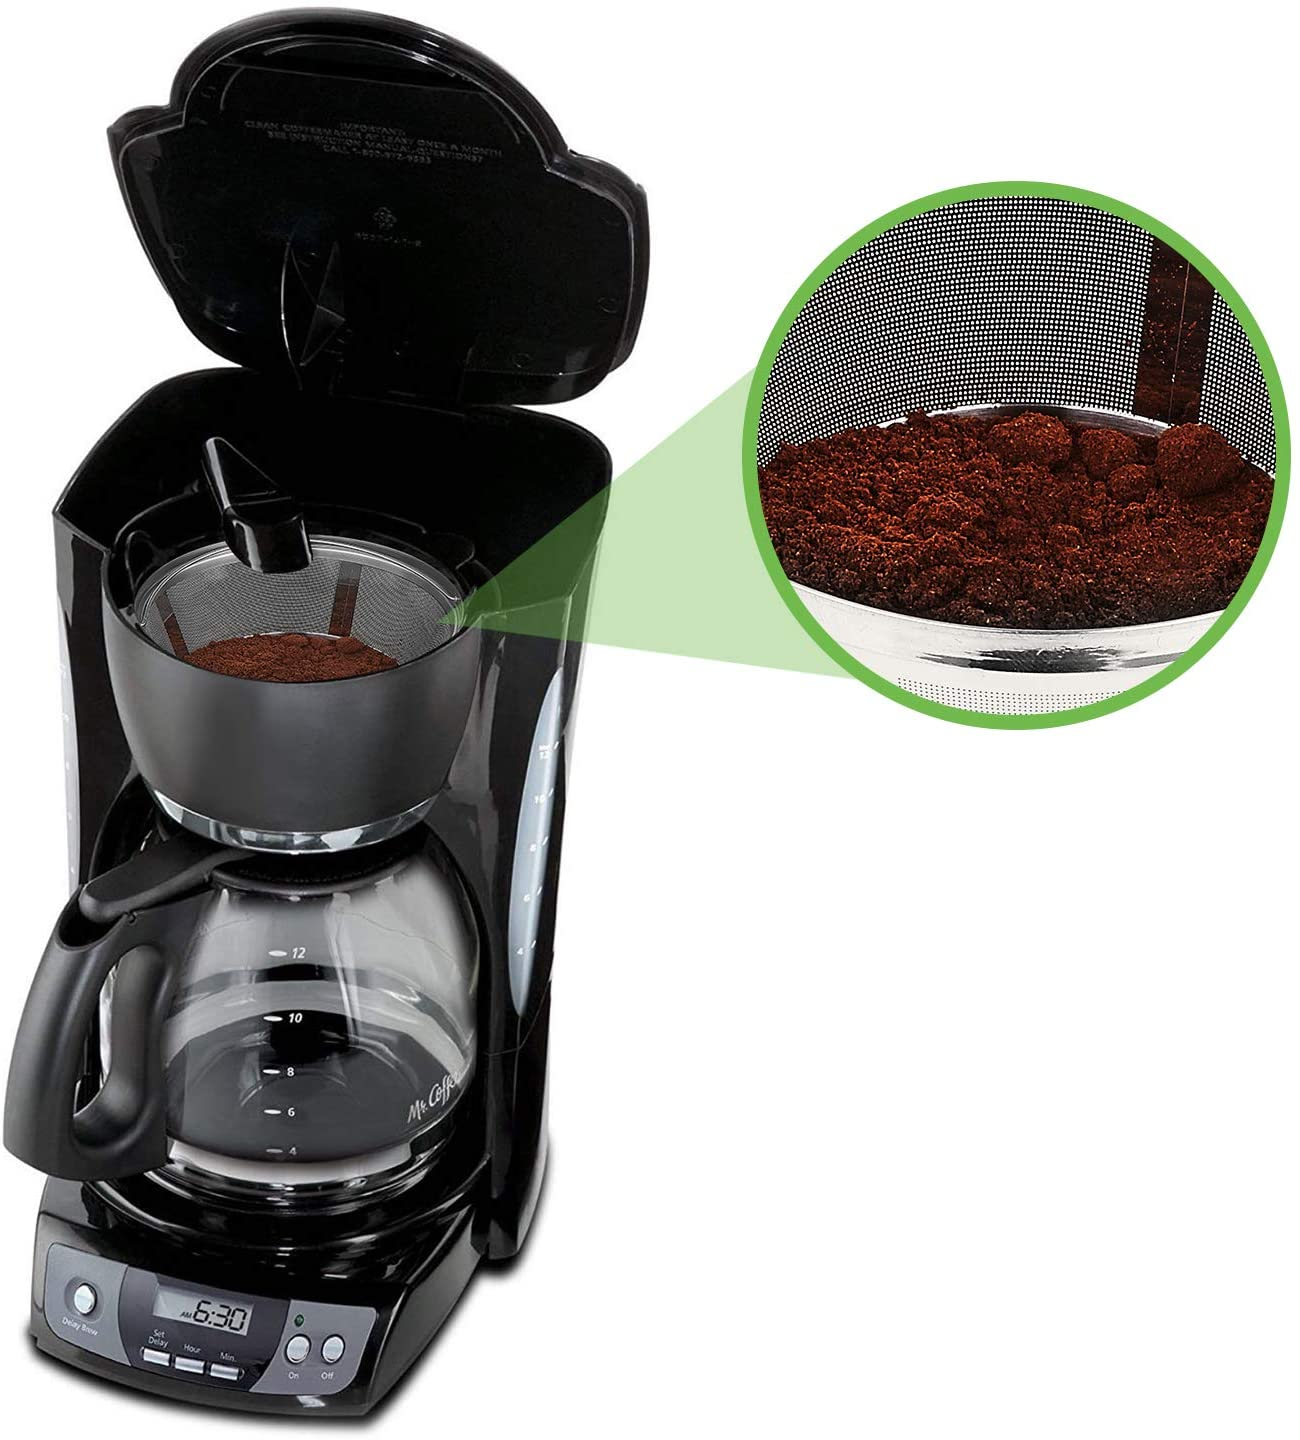 Reusable Coffee Filters 8-12 Cup Permanent Coffee Filters Basket Washable Compatible with Mr. Coffee Black & Decker Coffee Maker Filter Parts BPA-free